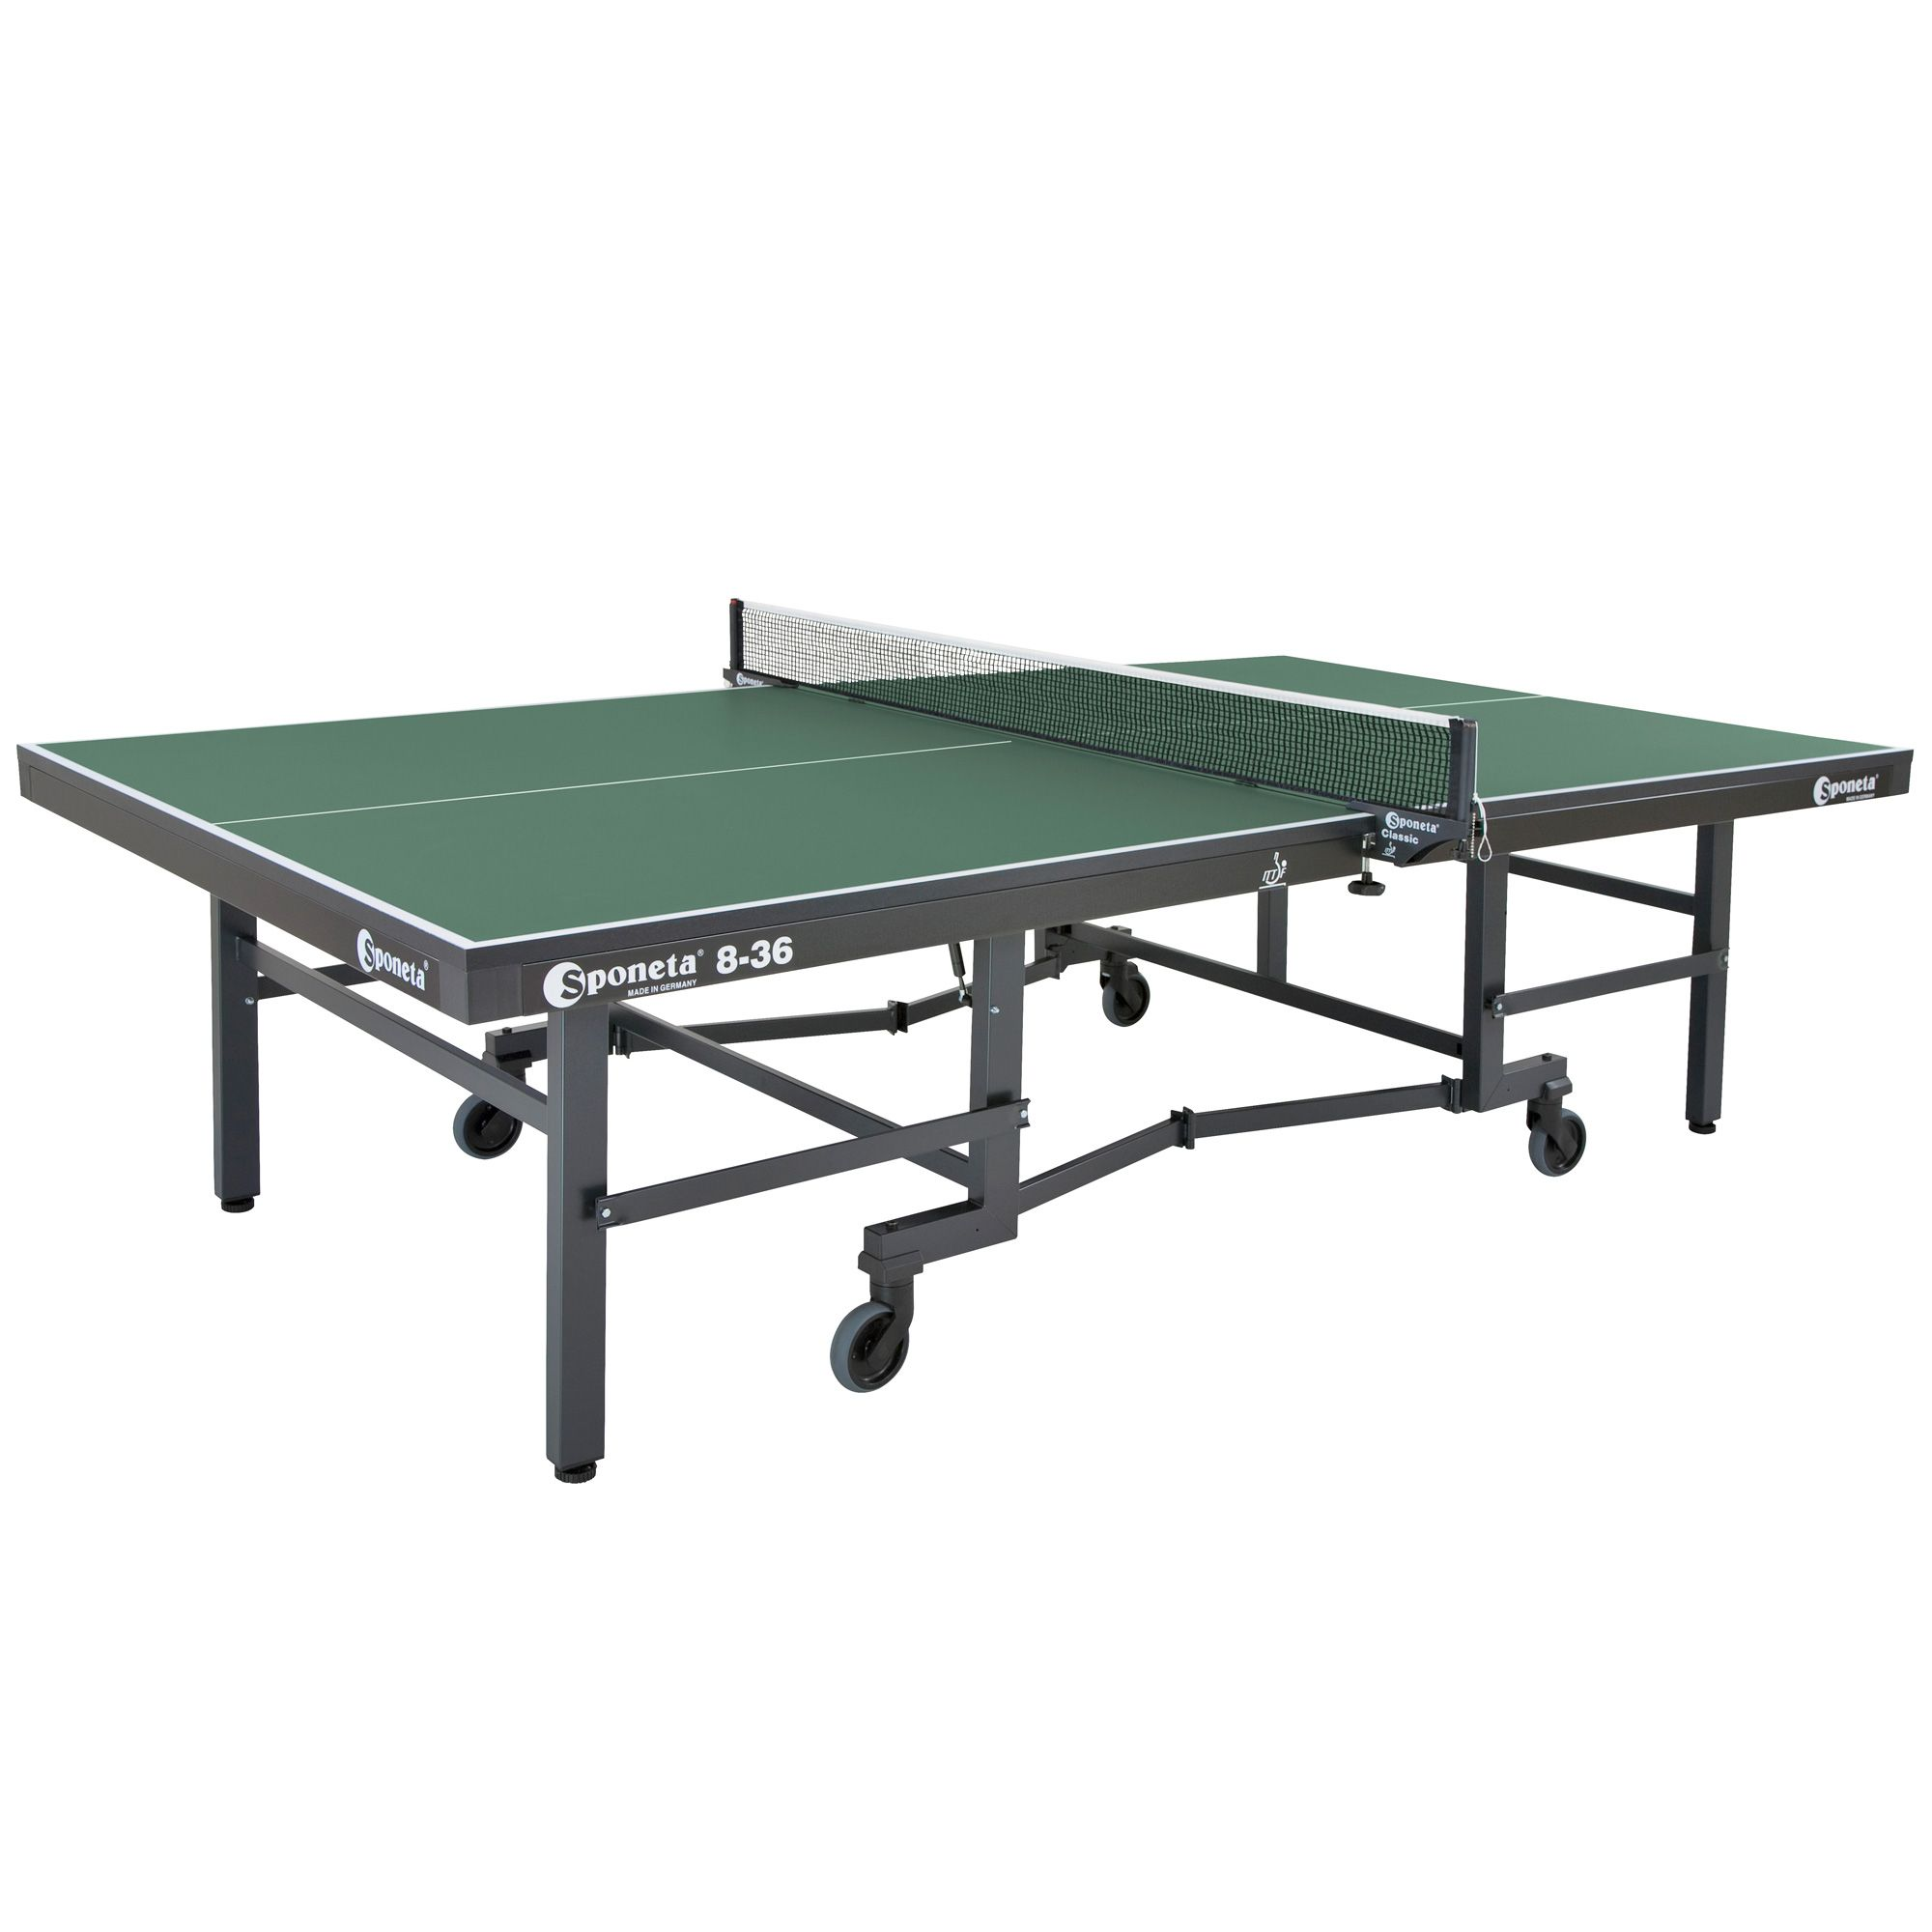 Sponeta championline ittf indoor table tennis table for Table tennis